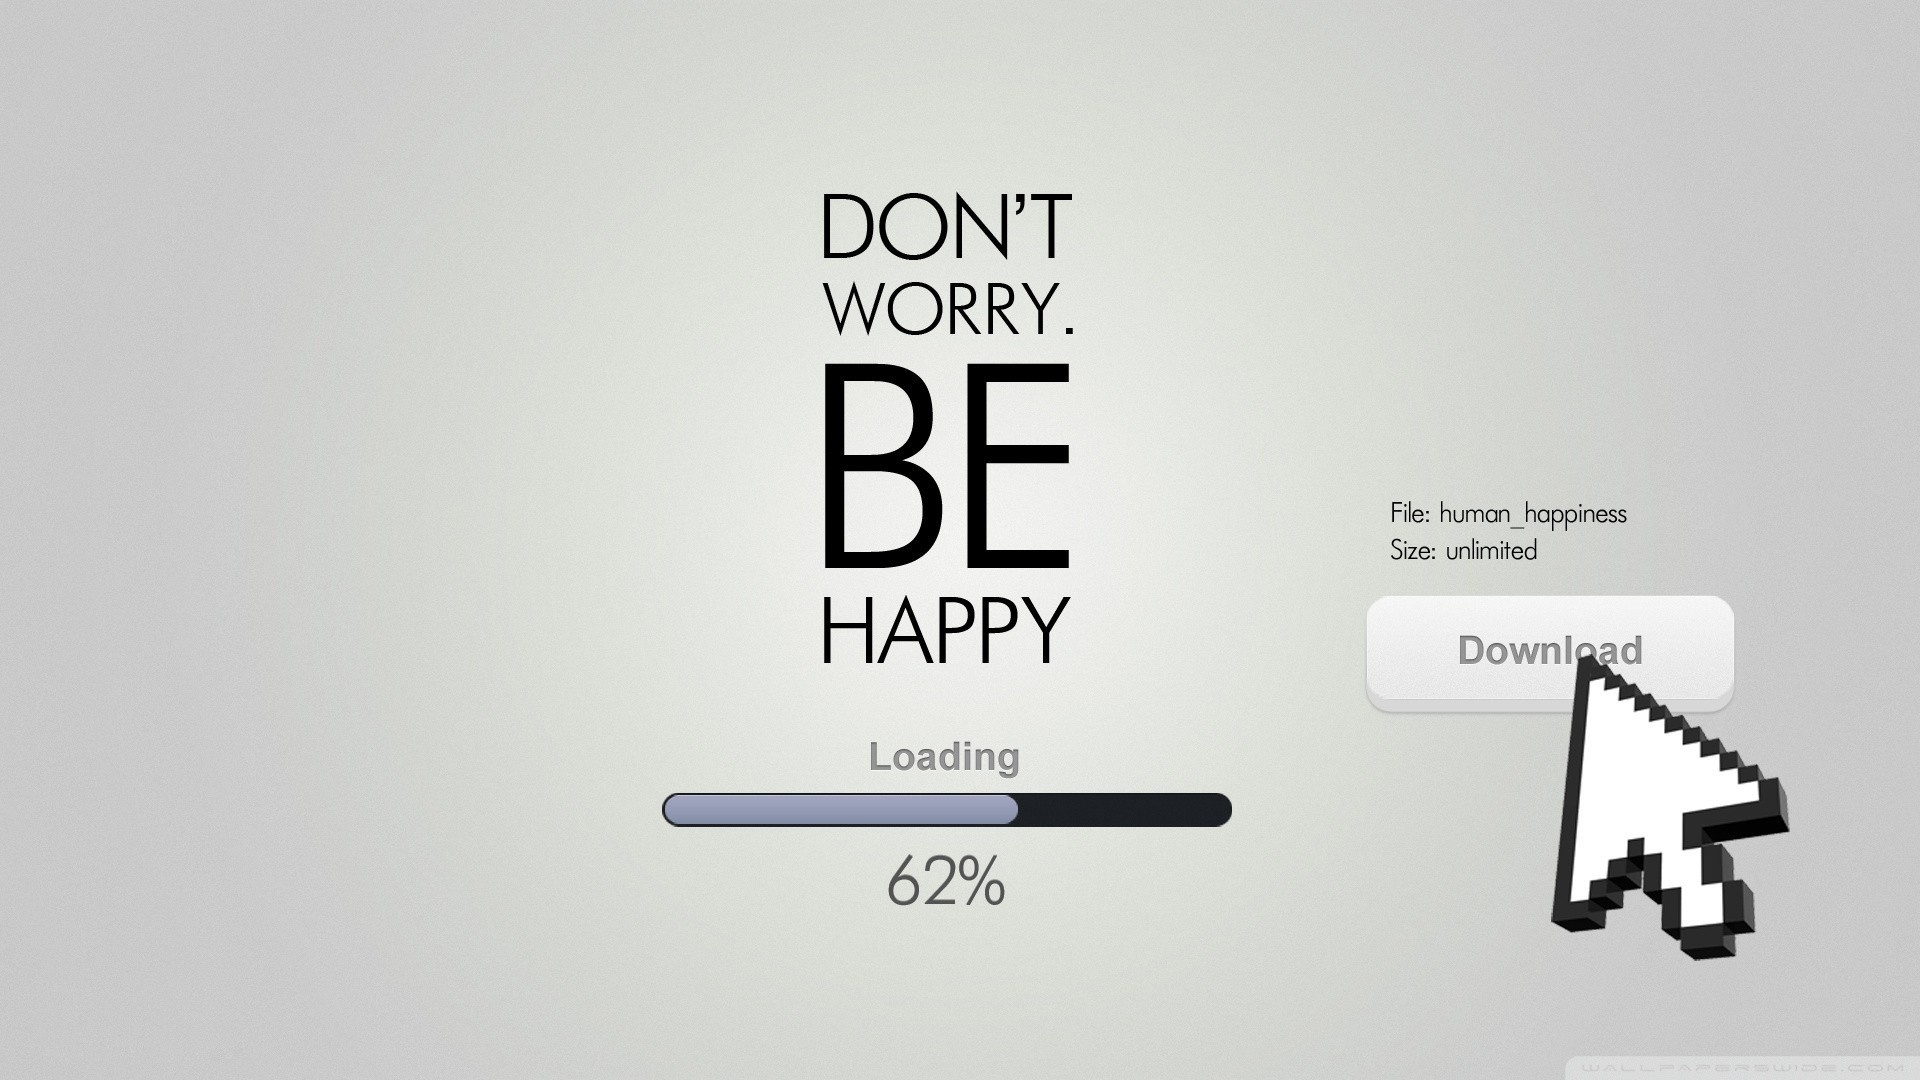 Funny desktop wallpapers 57 images 1920x1080 dont worry be happy hd wide wallpaper for 4k uhd widescreen desktop smartphone voltagebd Images